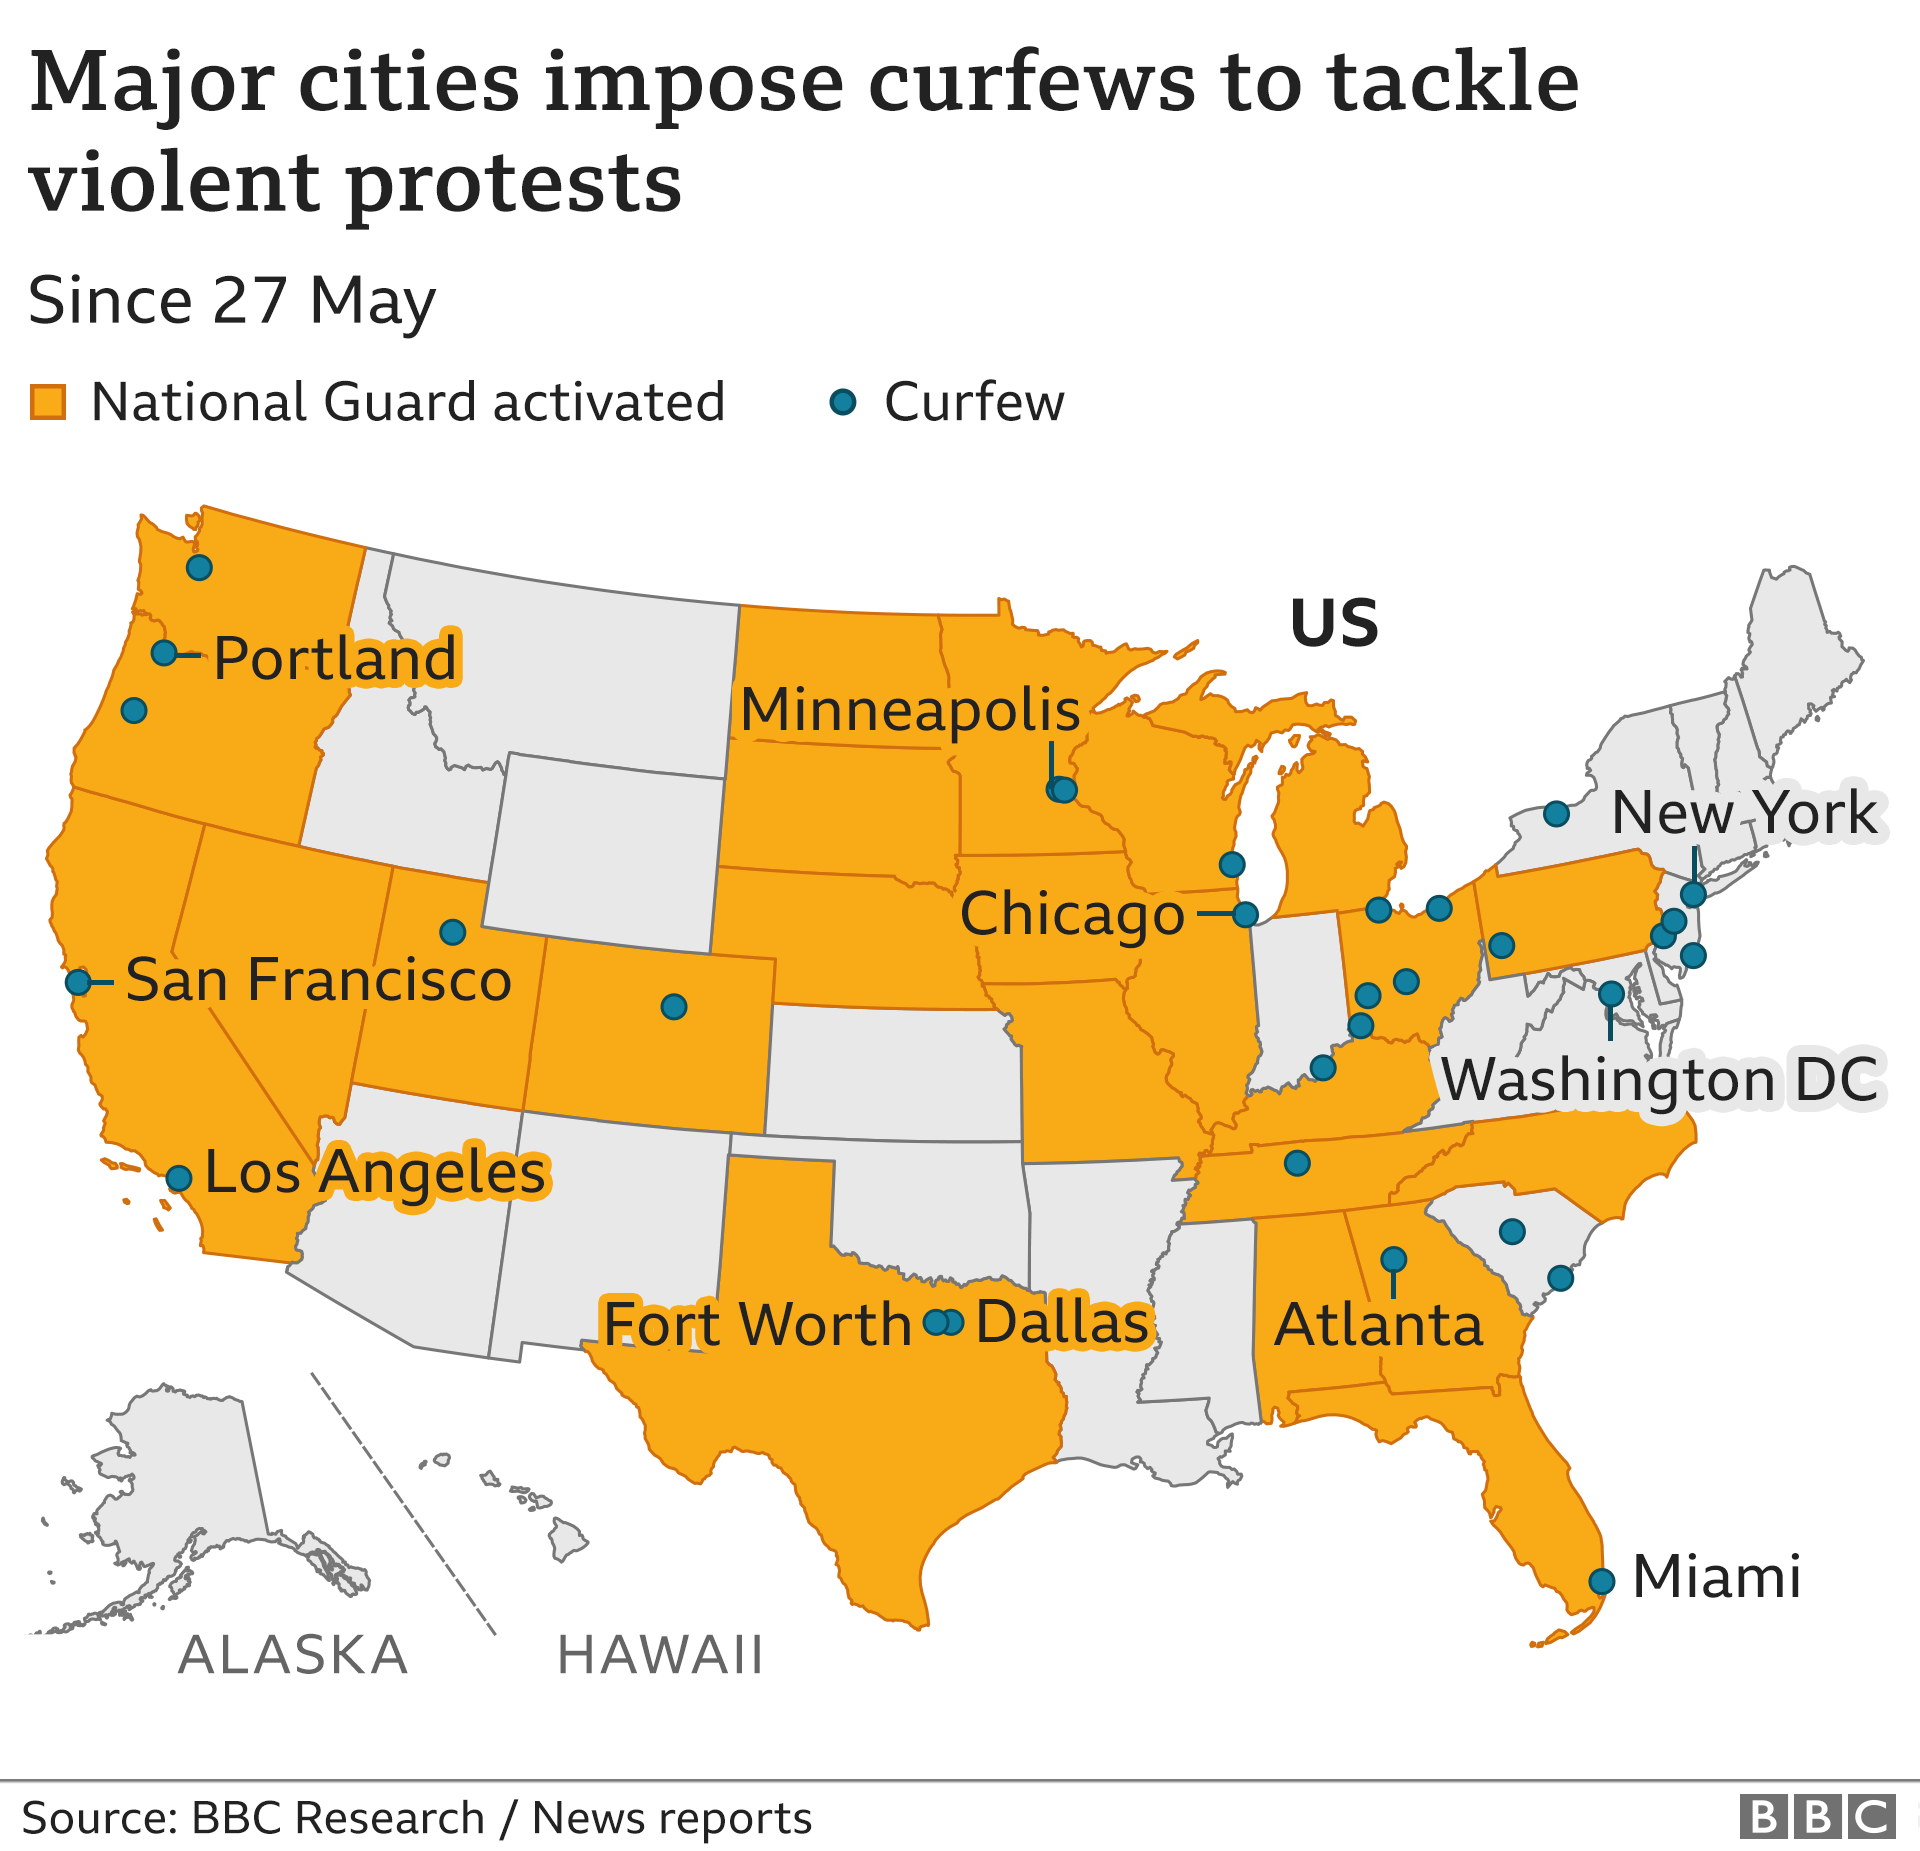 A map of major cities that have imposed curfews as unrest spreads across the US